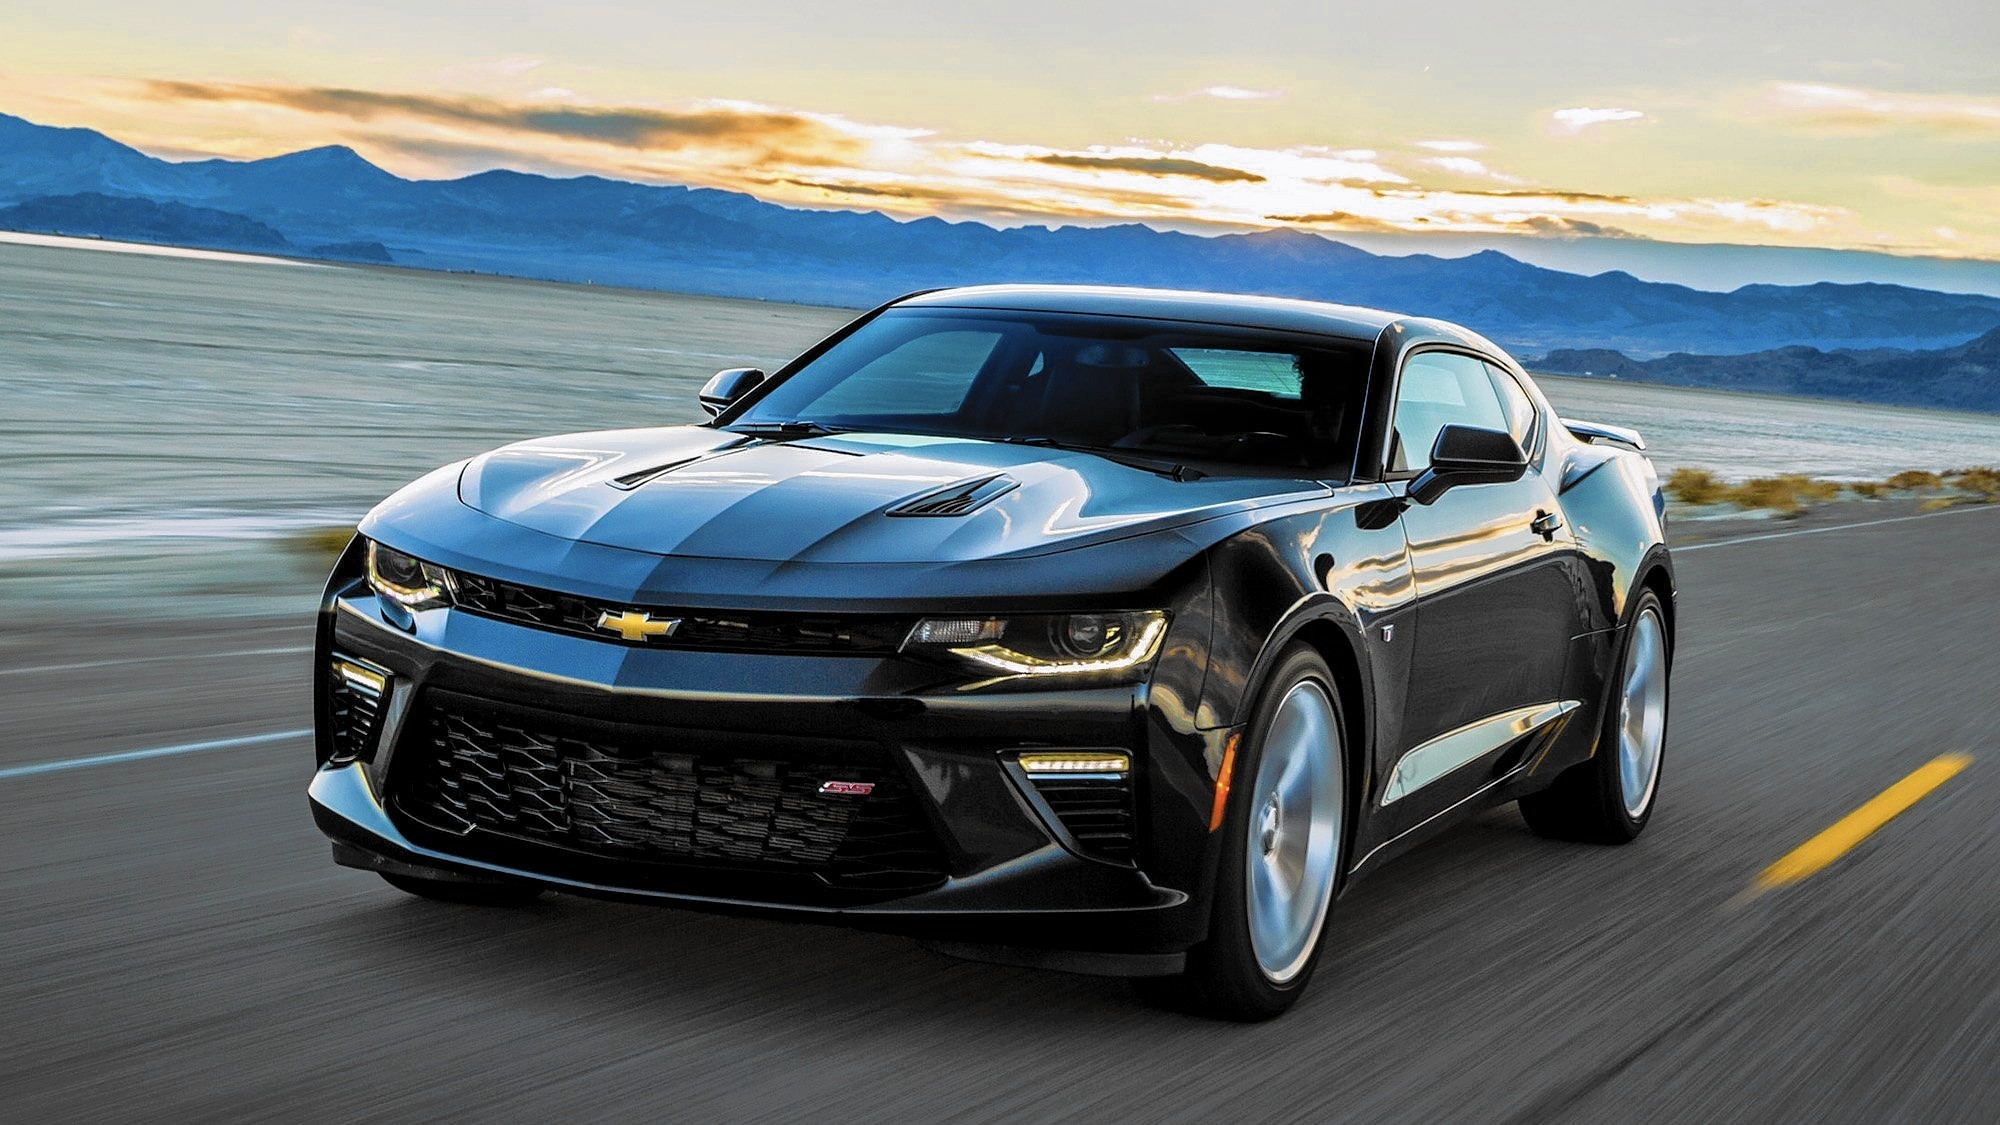 2016 Chevrolet Camaro turns up the heat during a drive to Death Valley